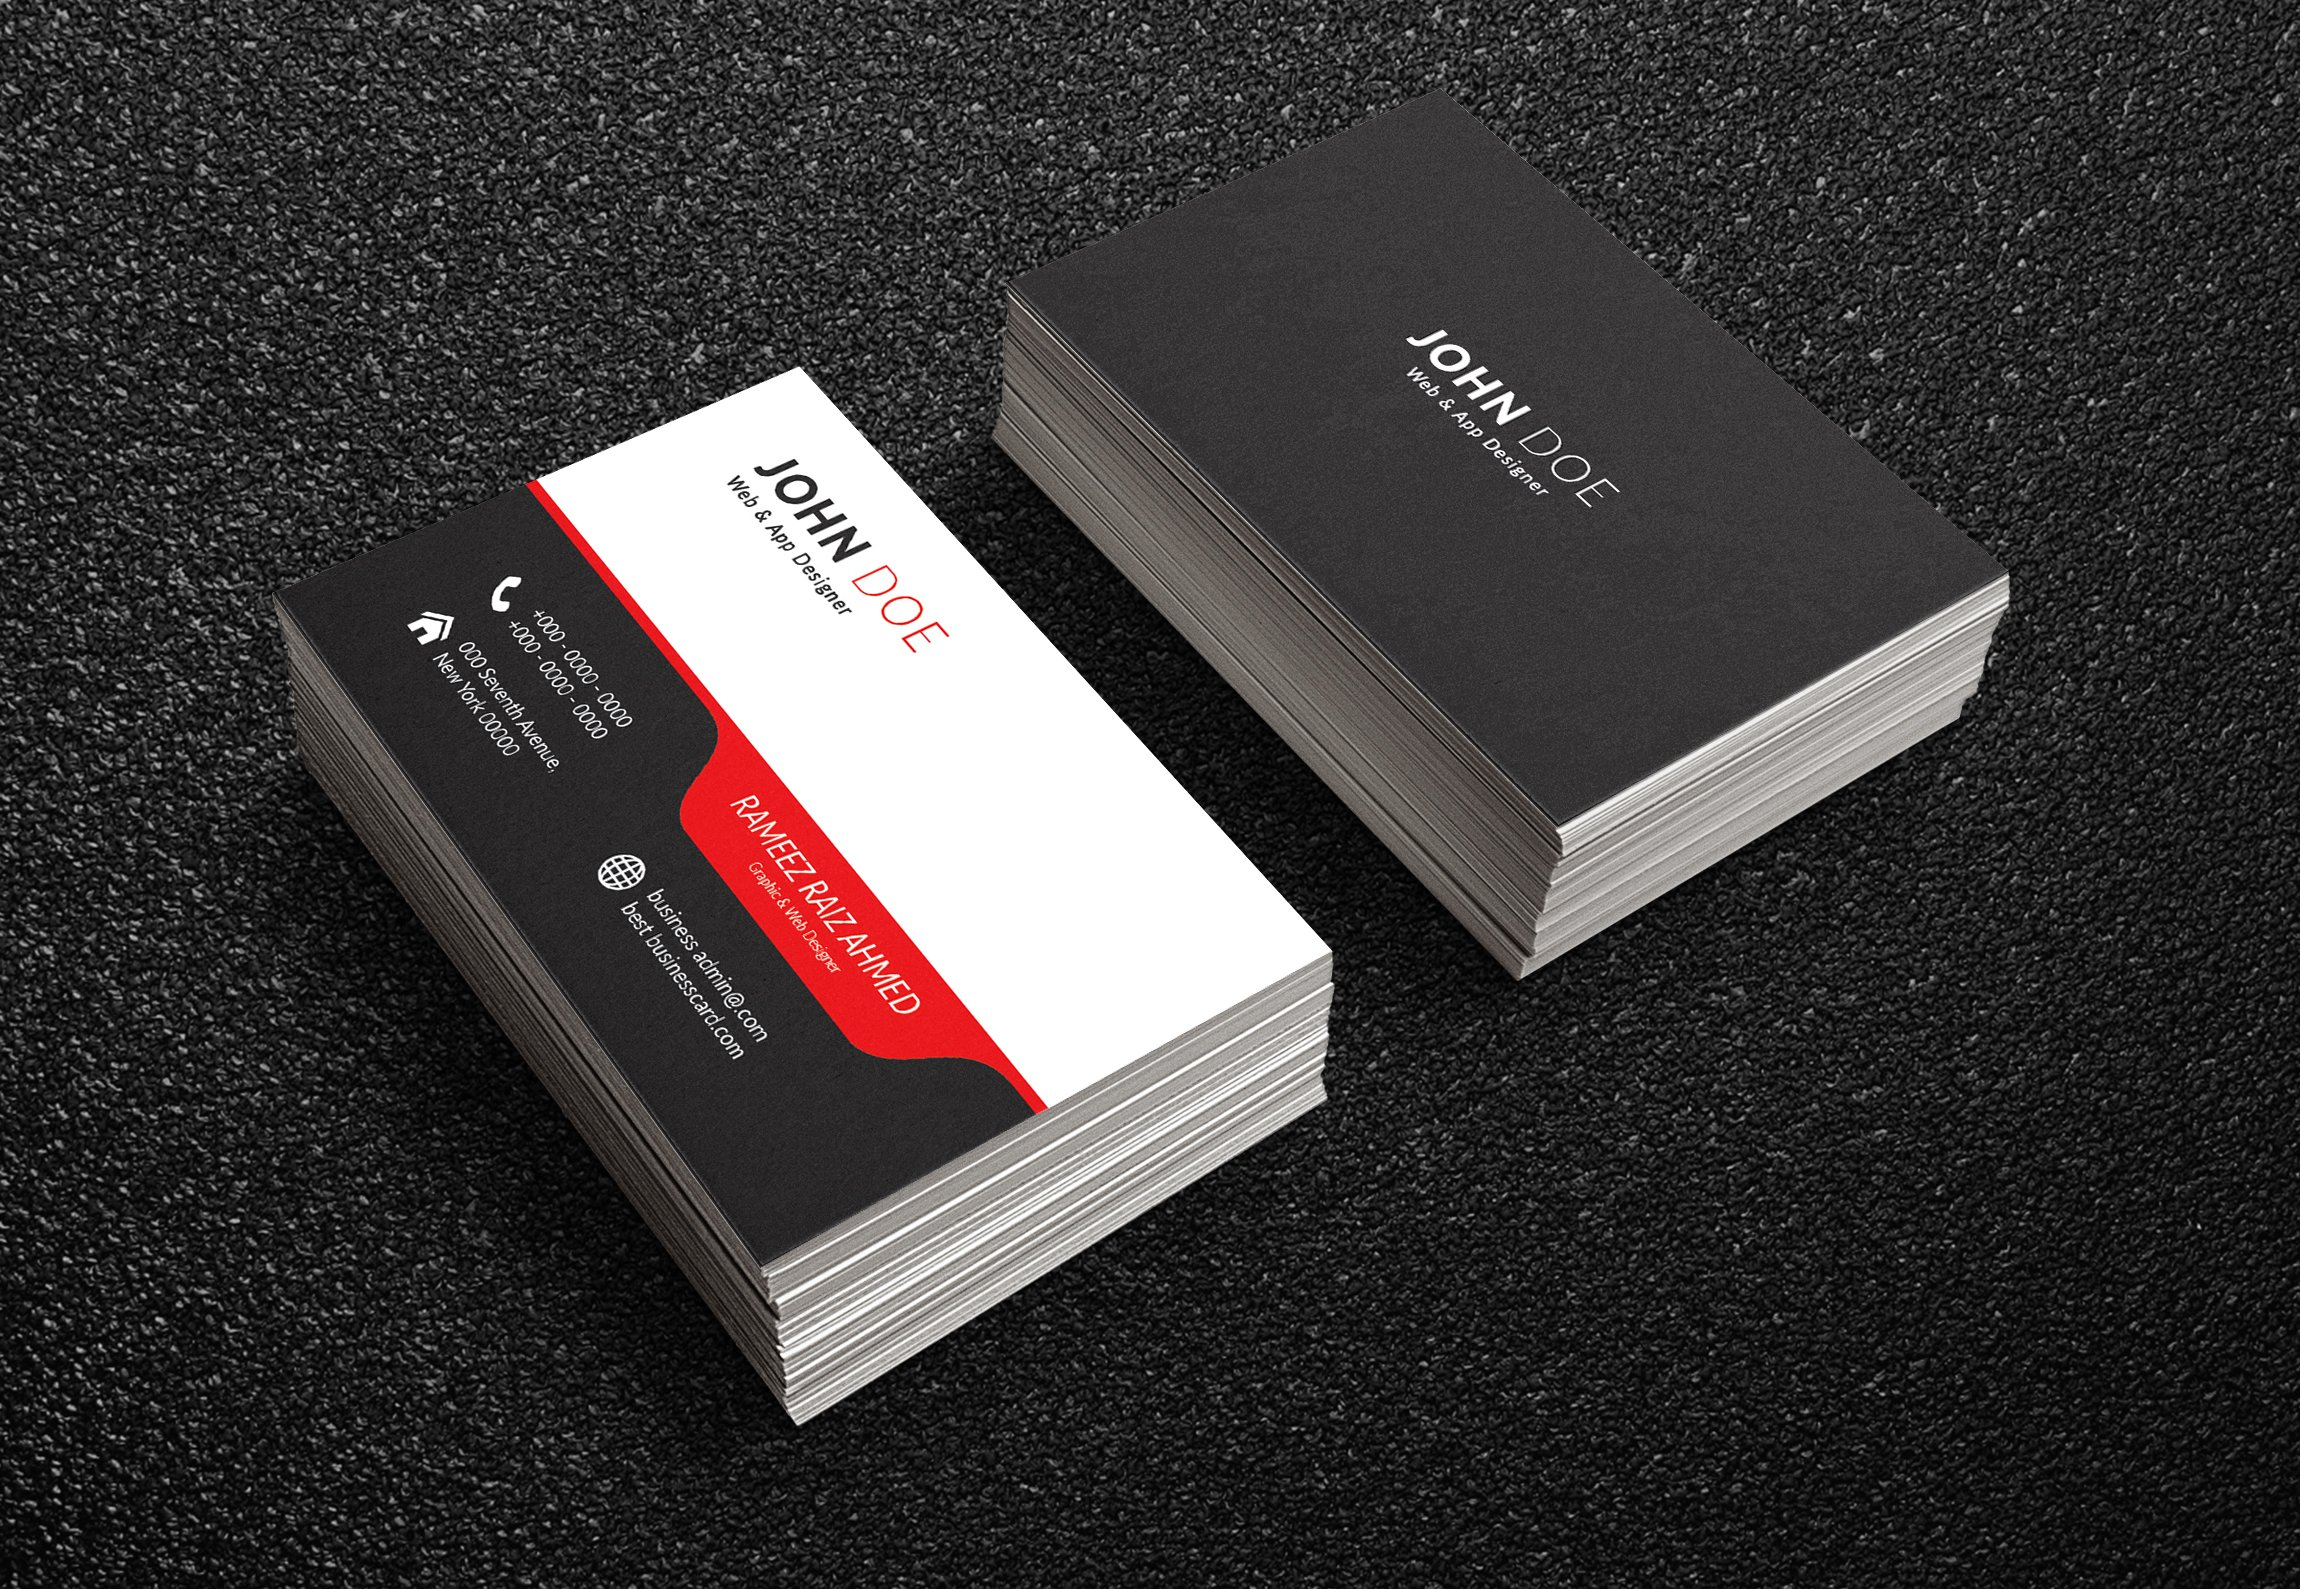 Business card app trick gallery card design and card template new images of electronic business card app business cards and creative business card business card templates reheart Choice Image